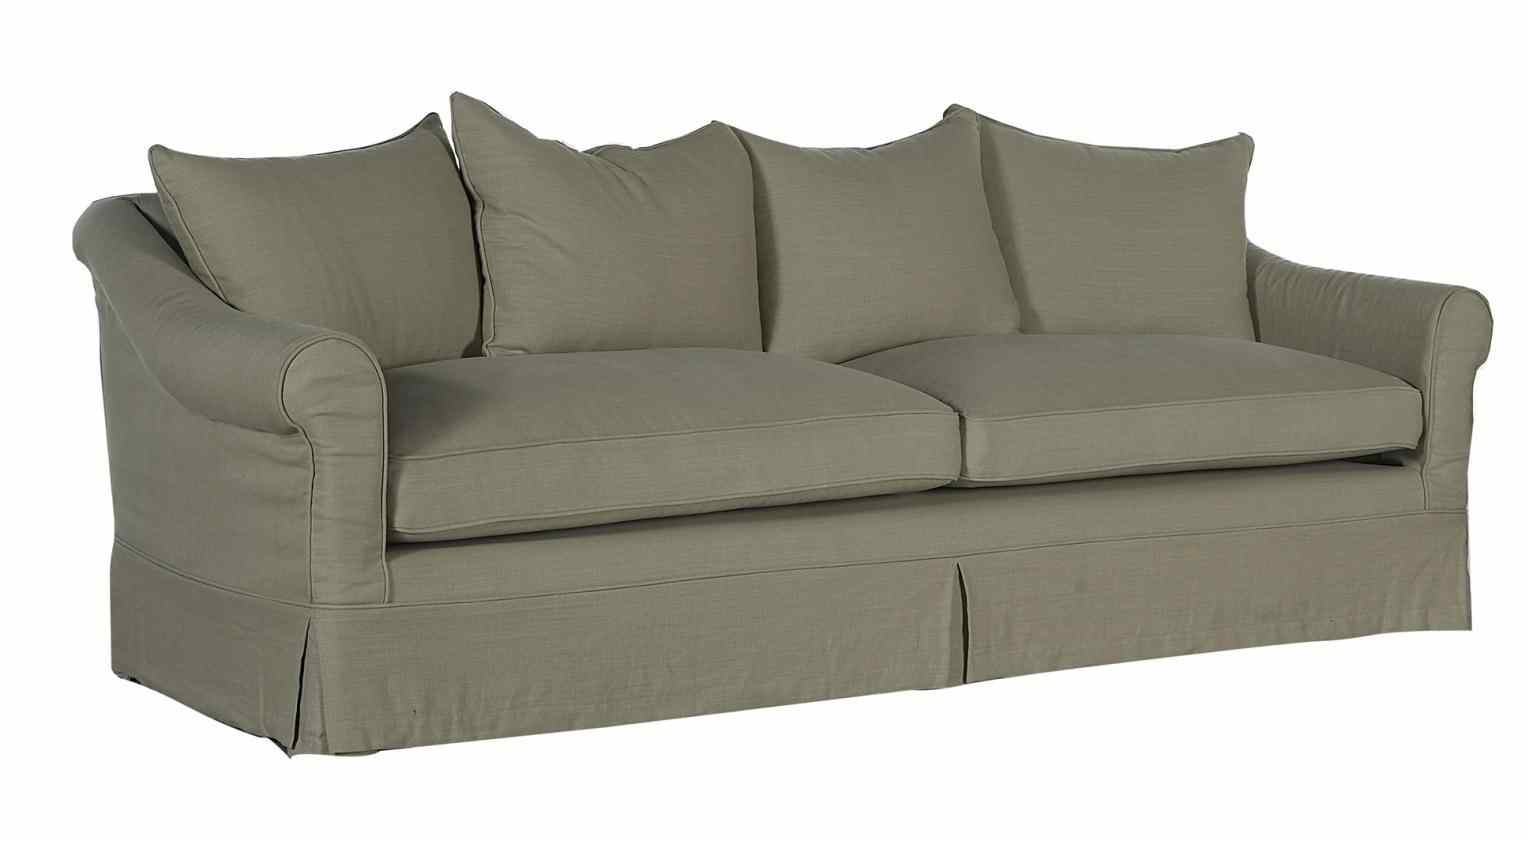 Sofa : Fabric Seater Cover Sectional Sectional Sofas With Removable Inside Removable Covers Sectional Sofas (View 10 of 10)